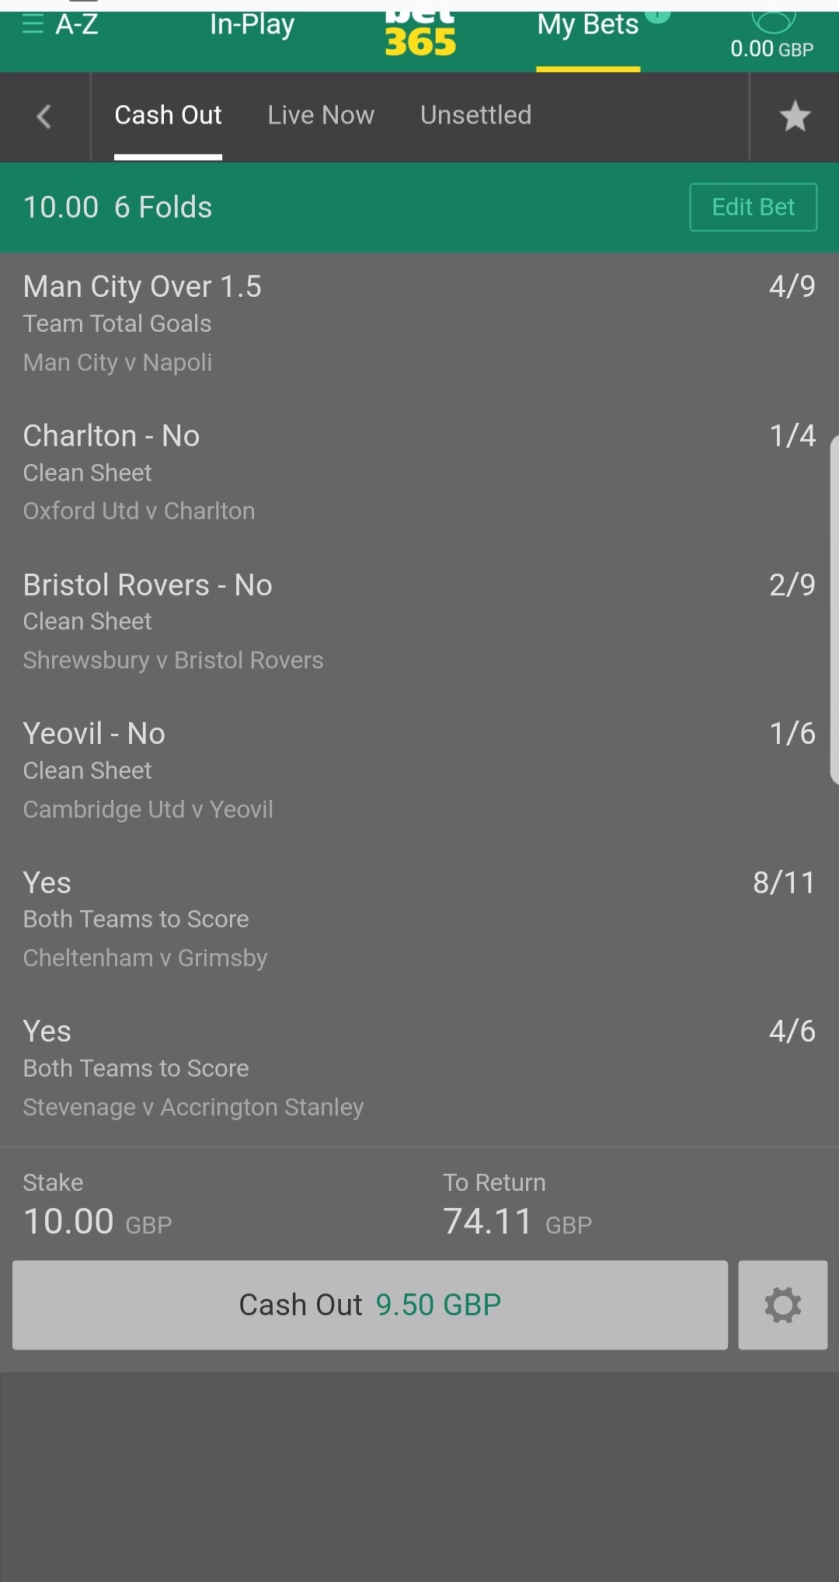 17.10.17 Selections